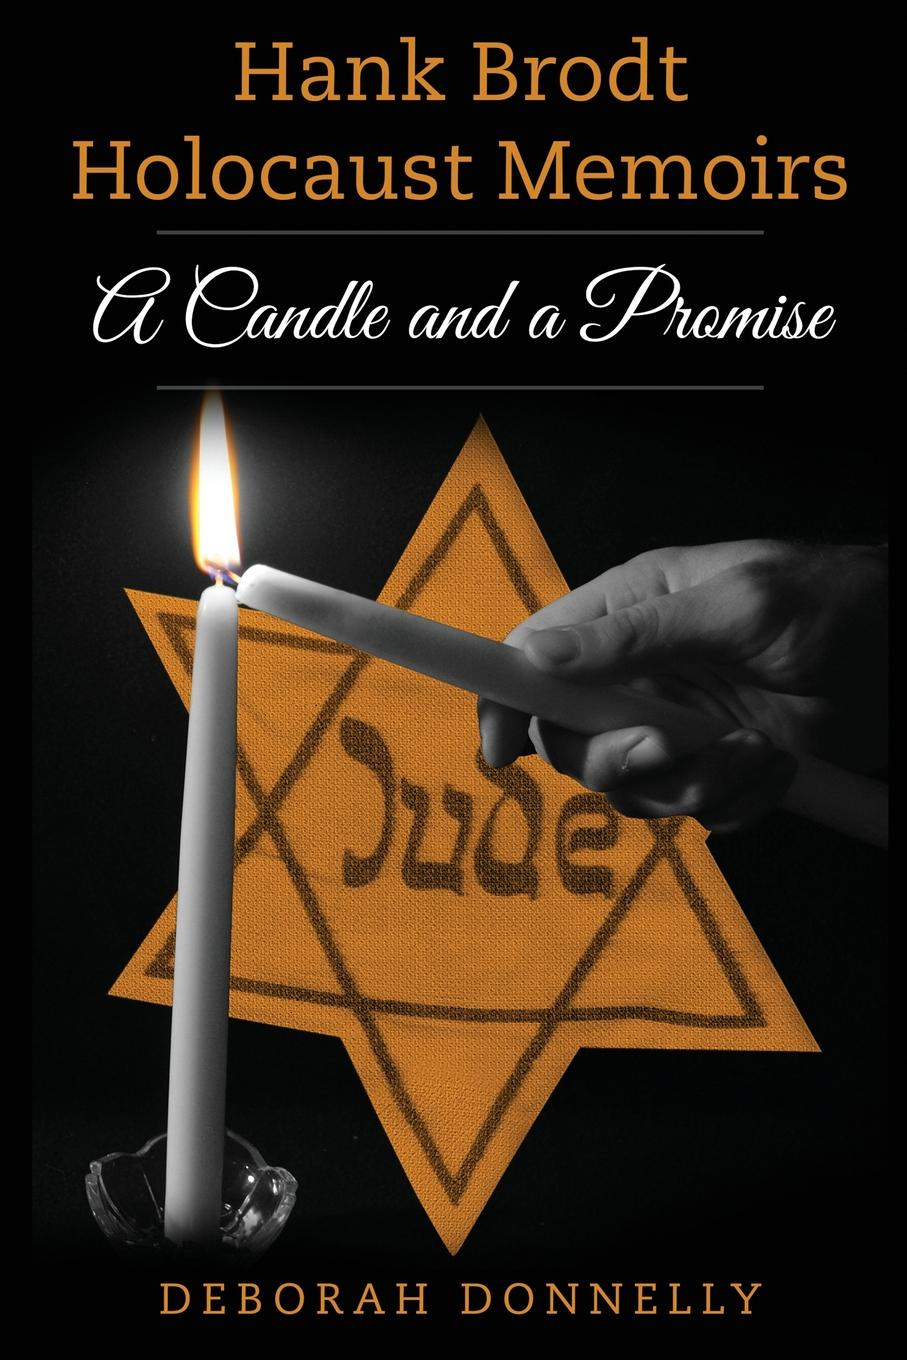 Deborah Donnelly Hank Brodt Holocaust Memoirs. A Candle and a Promise lipstadt d denial holocaust history on trial